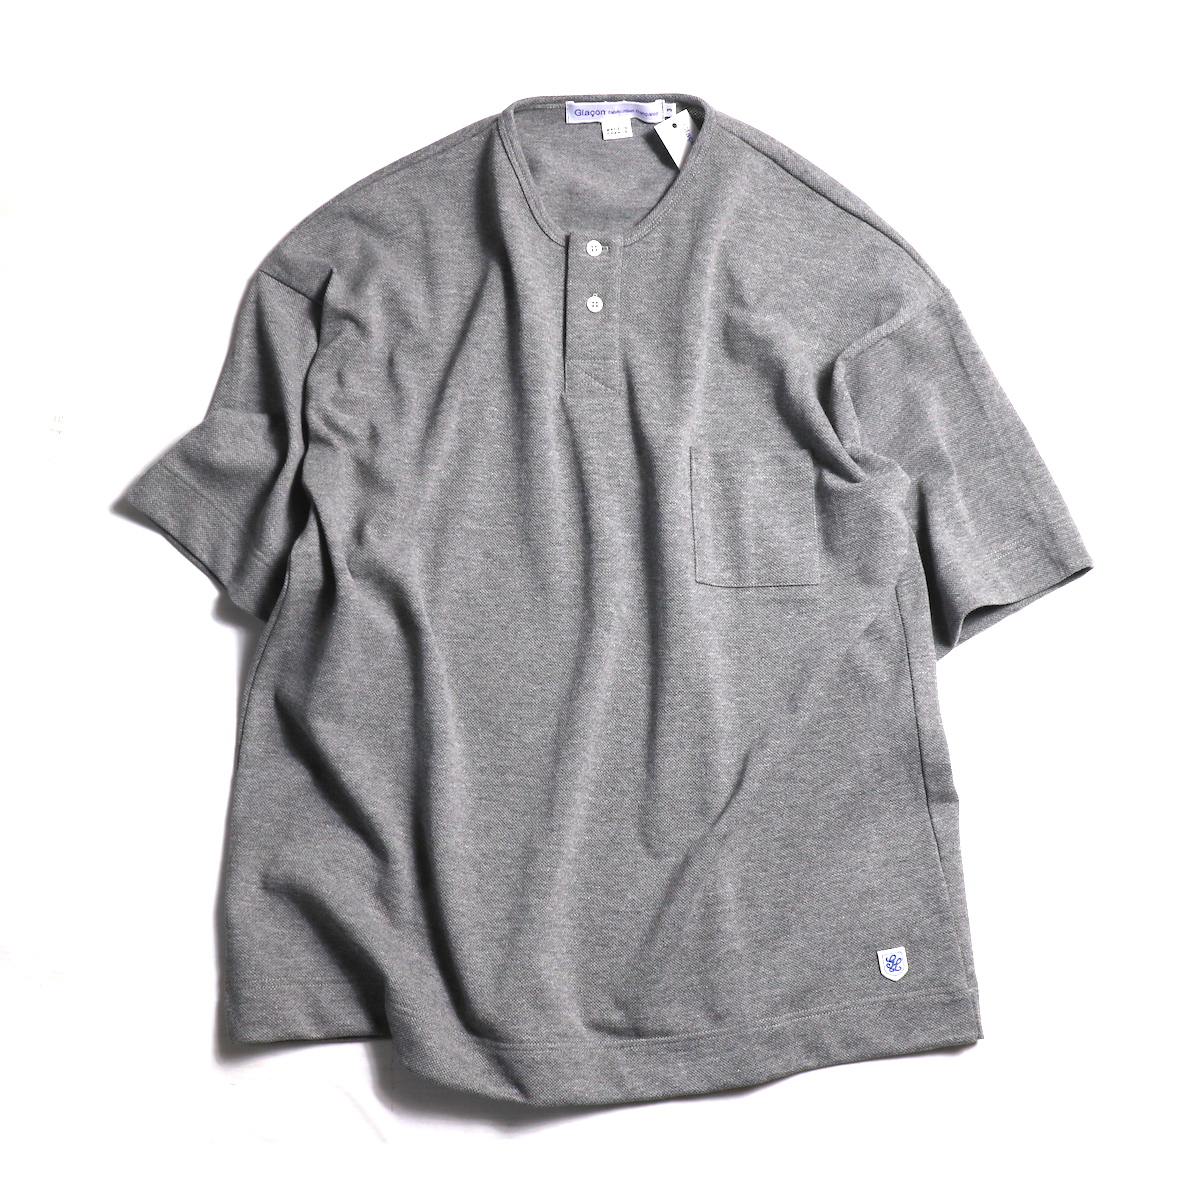 Glacon / Pique Big No Collar Tee -Gris Chine